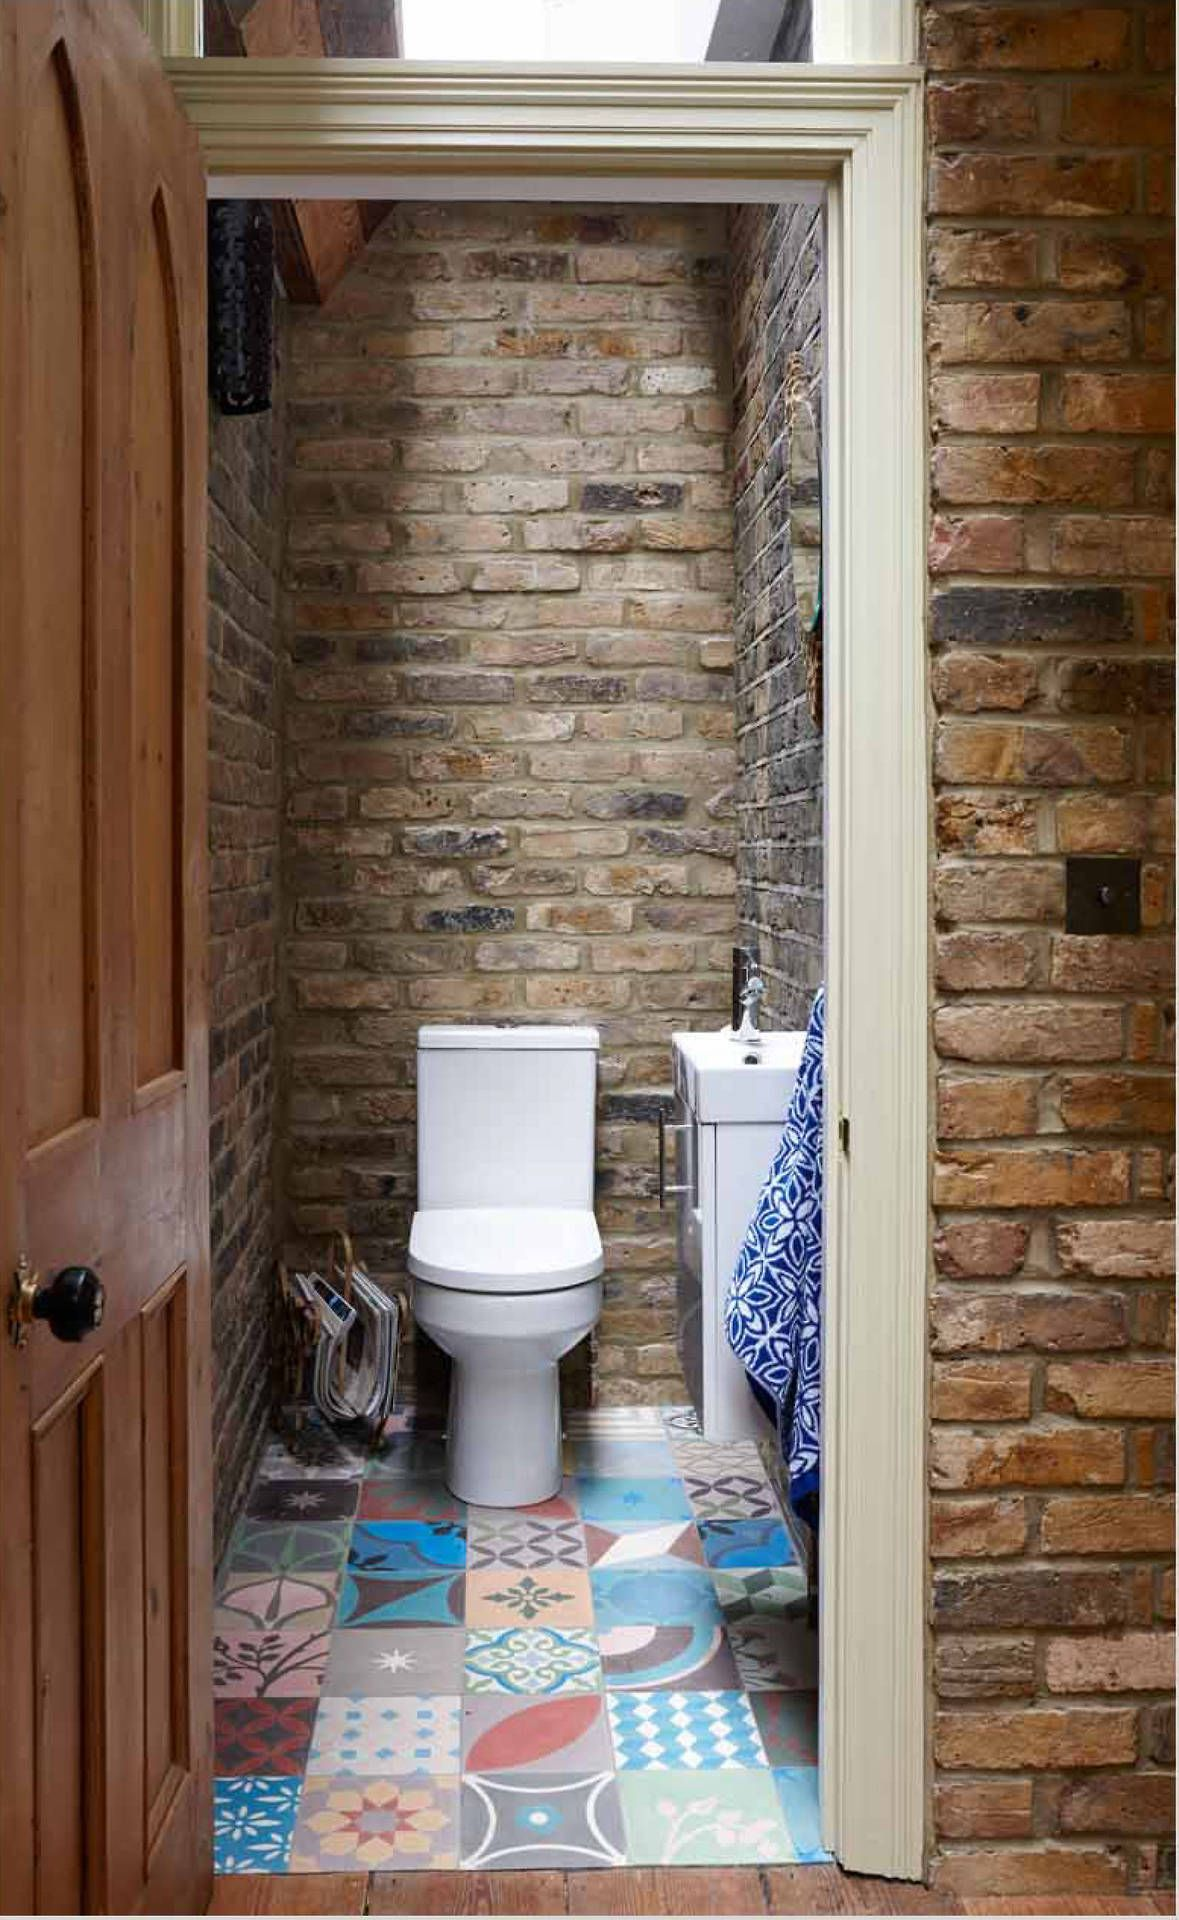 New Post On Inter1or World In 2020 Small Rustic Bathrooms Brick Bathroom Rustic Bathrooms